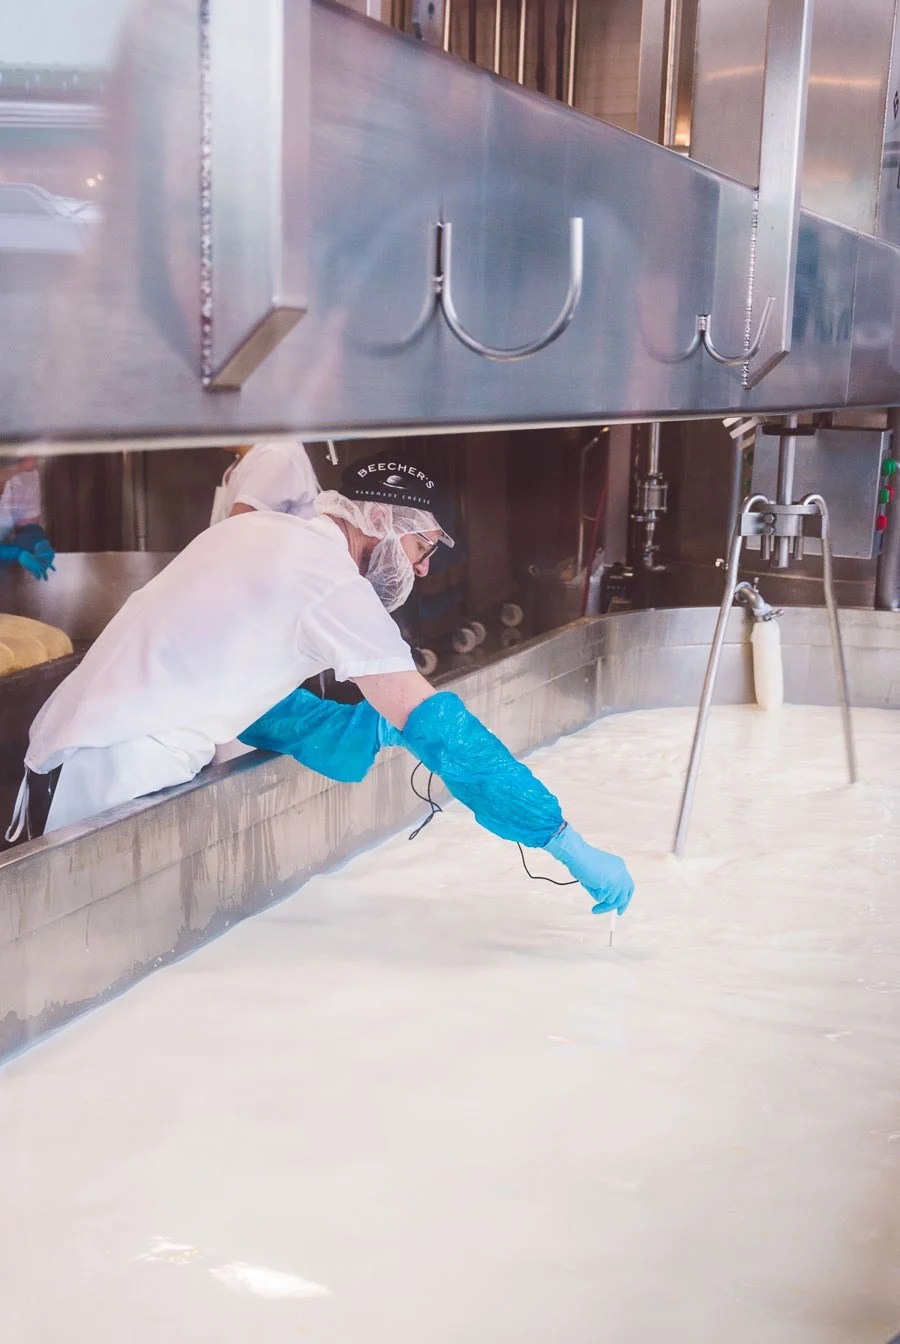 A Beecher's cheesemaker leaning over to take the temperature of a large tub of milk